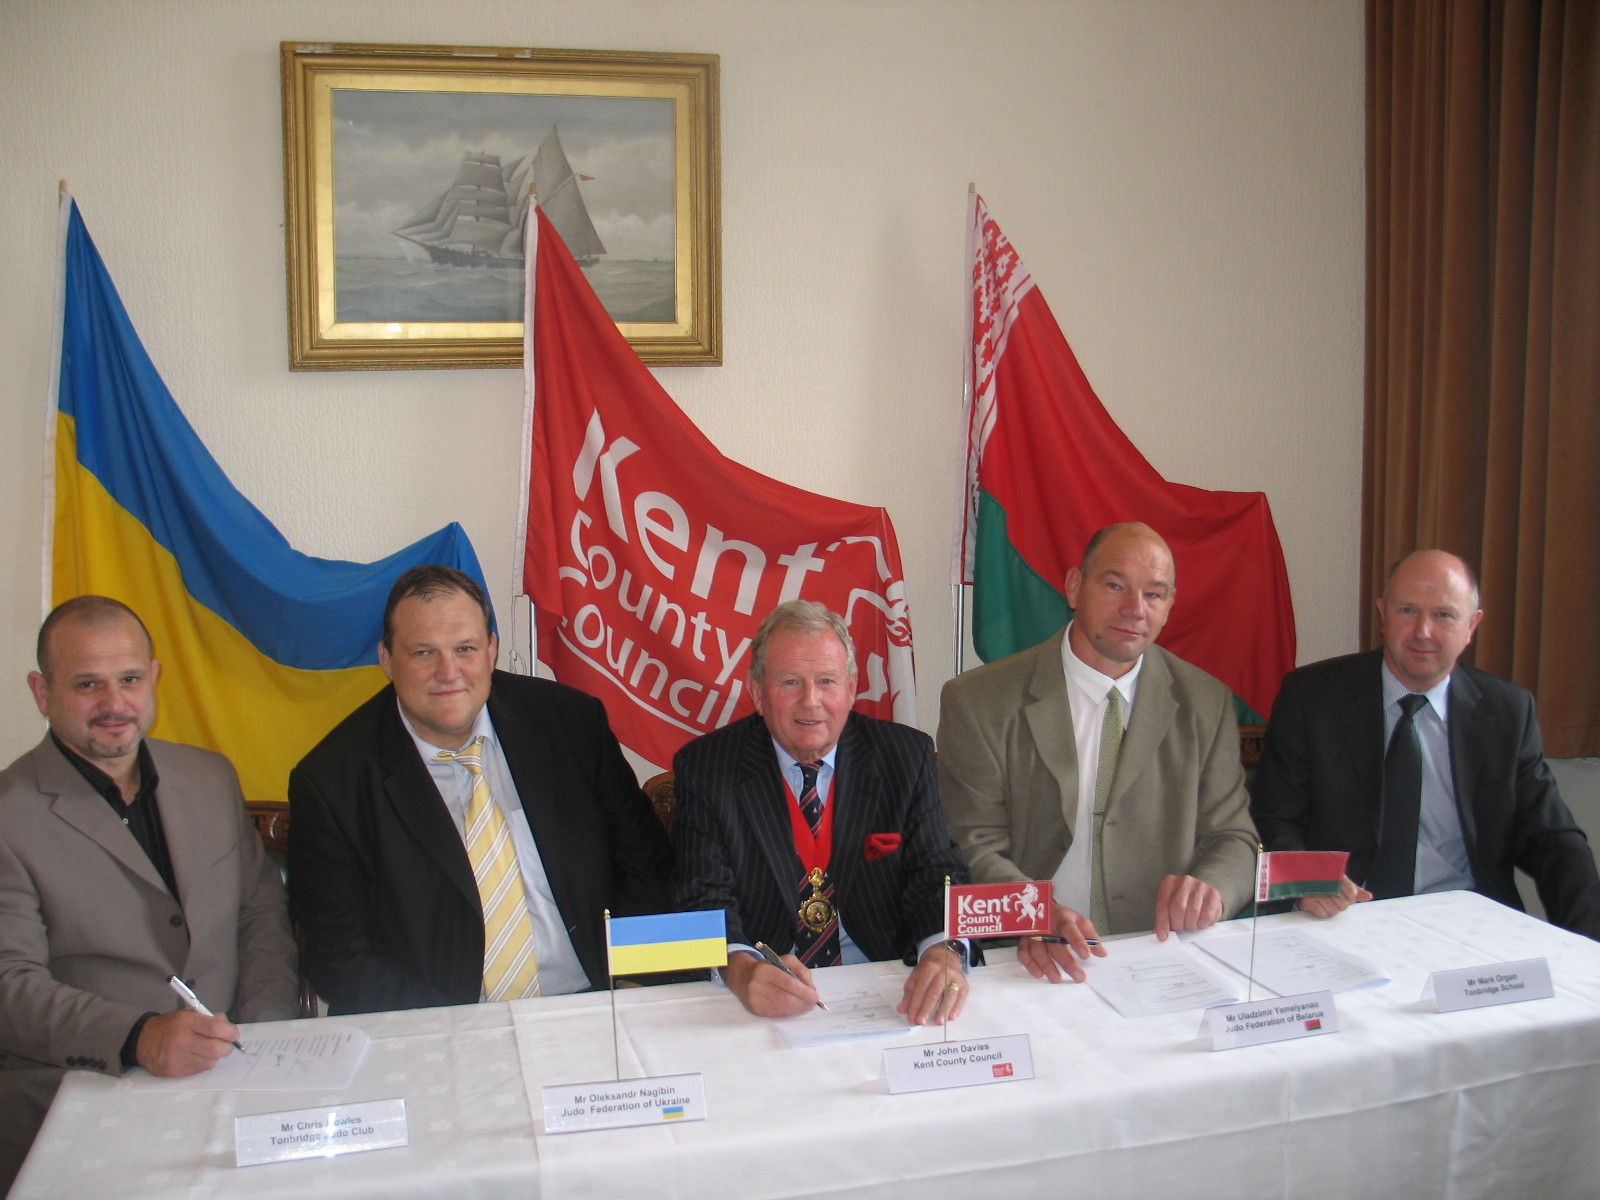 Belarus and Ukraine signed a deal to base themselves at pre-Games training camps in Kent before London 2012 ©Kent County Council